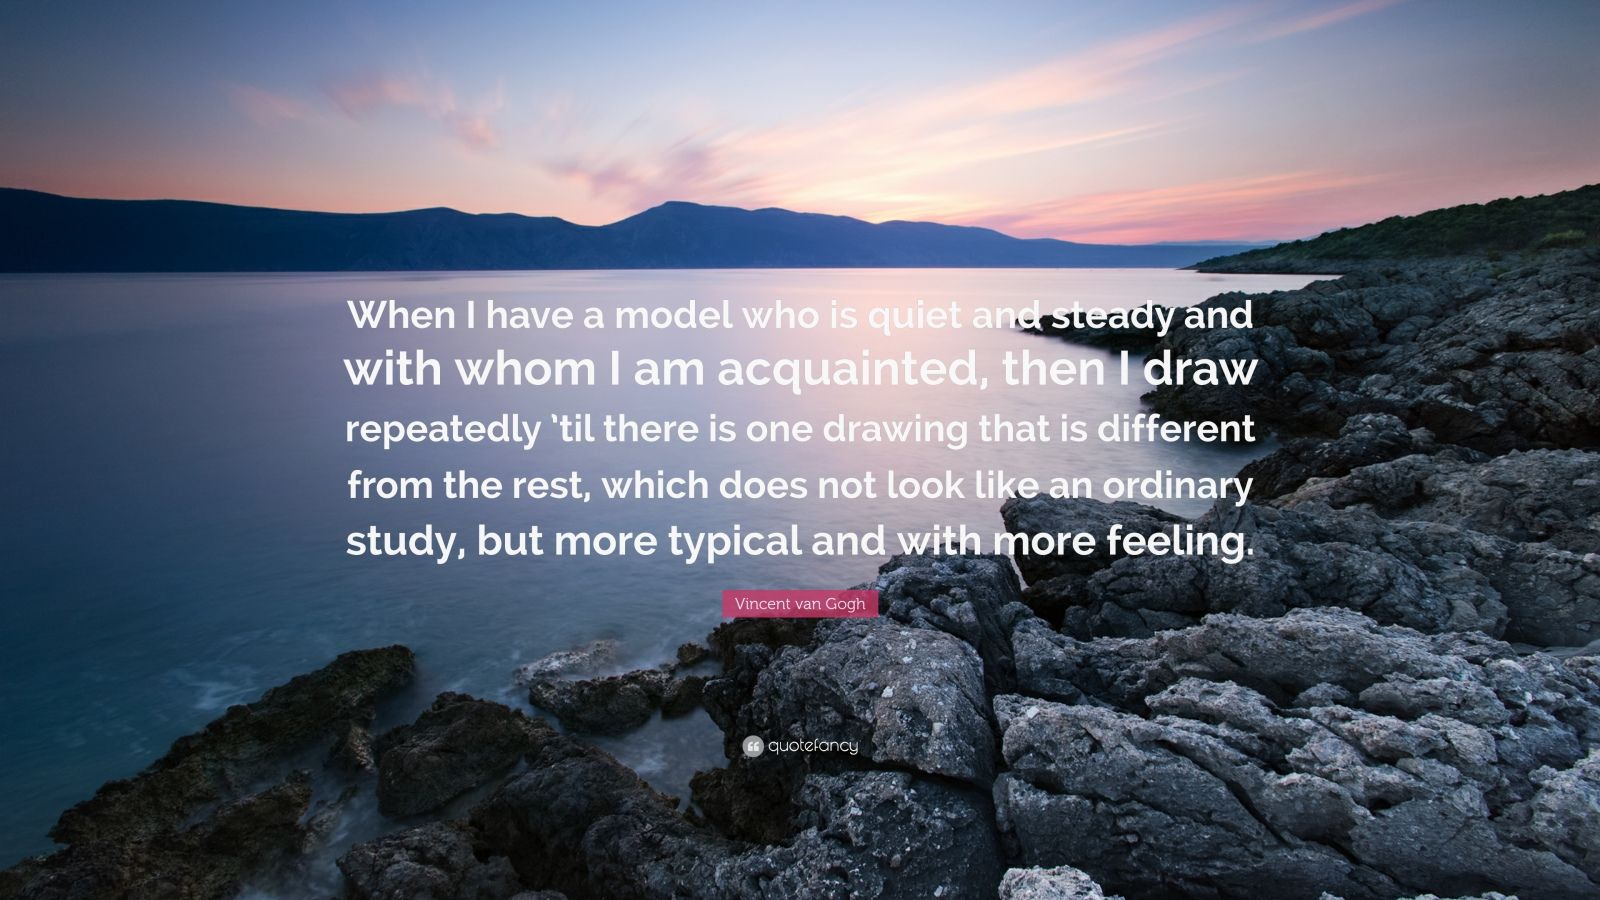 """Vincent van Gogh Quote: """"When I have a model who is quiet and steady and with whom I am acquainted, then I draw repeatedly 'til there is one drawing that is different from the rest, which does not look like an ordinary study, but more typical and with more feeling."""""""